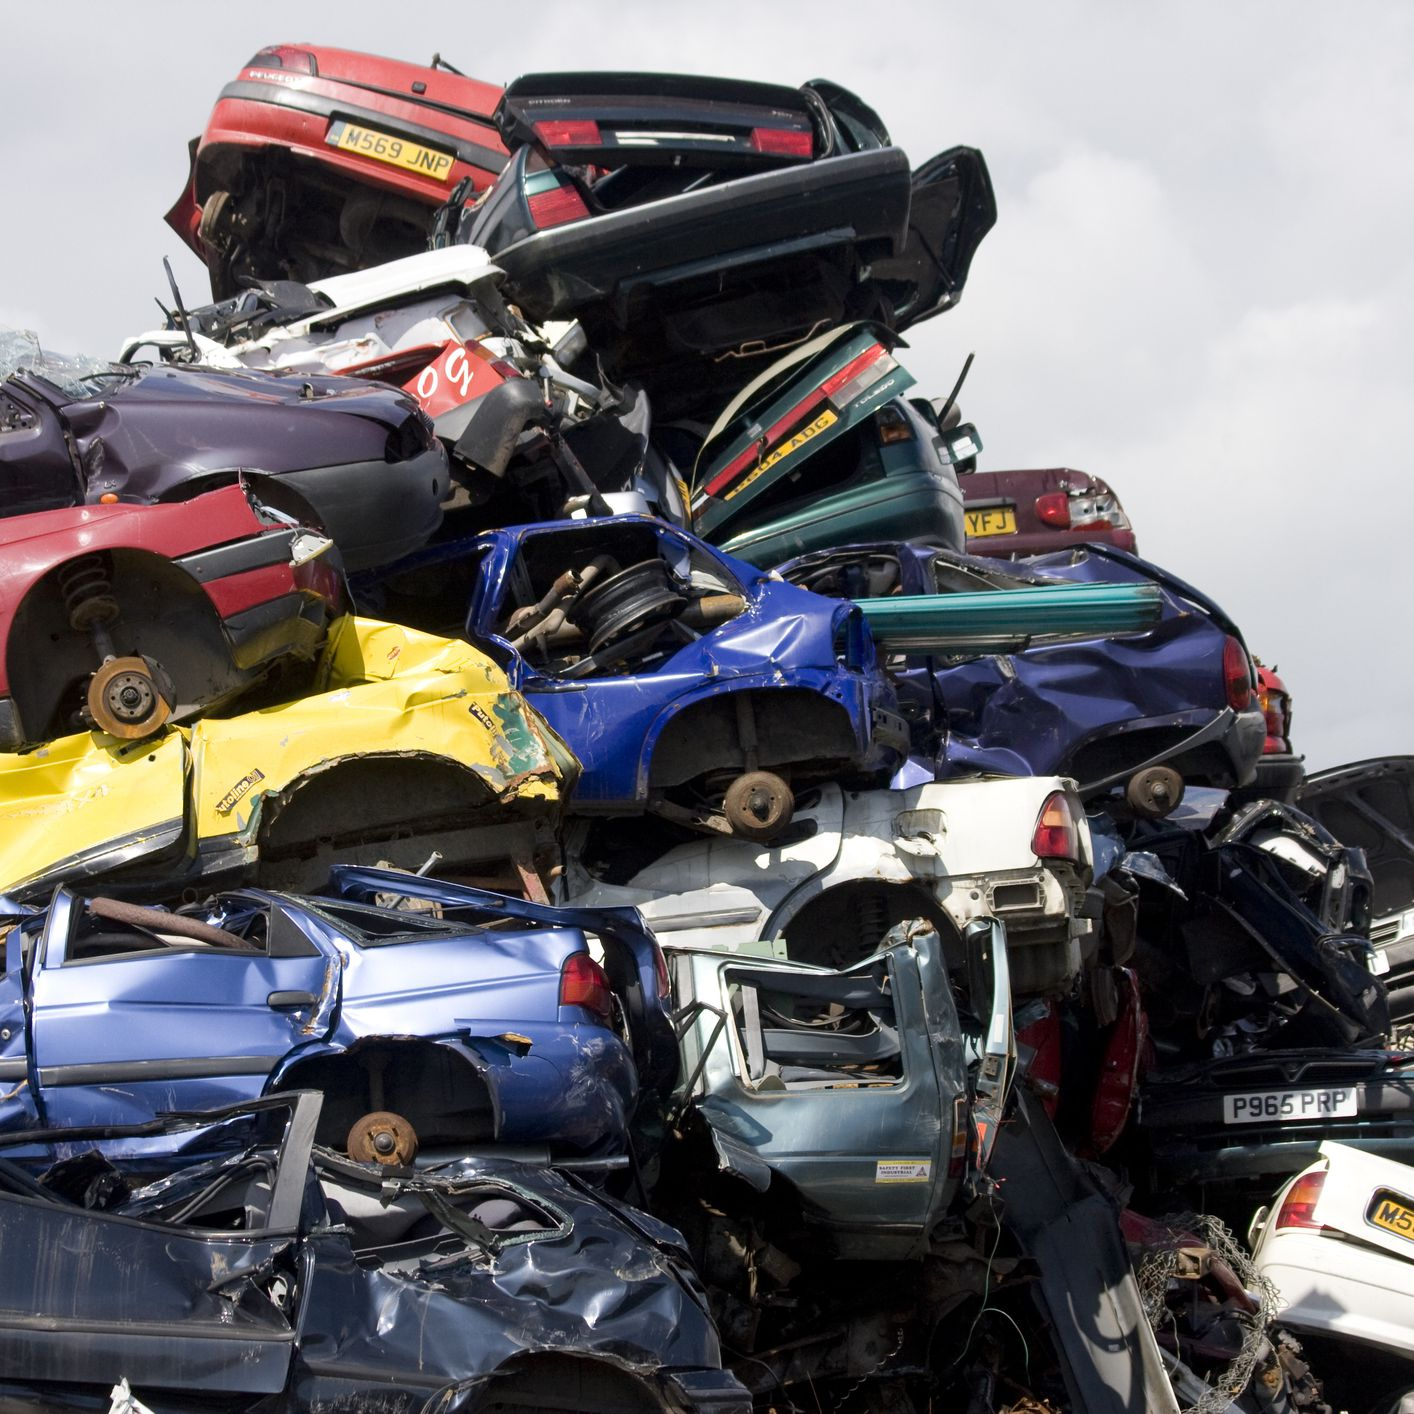 Auto Recycling Recent Trends, Statistics, Opportunities, and